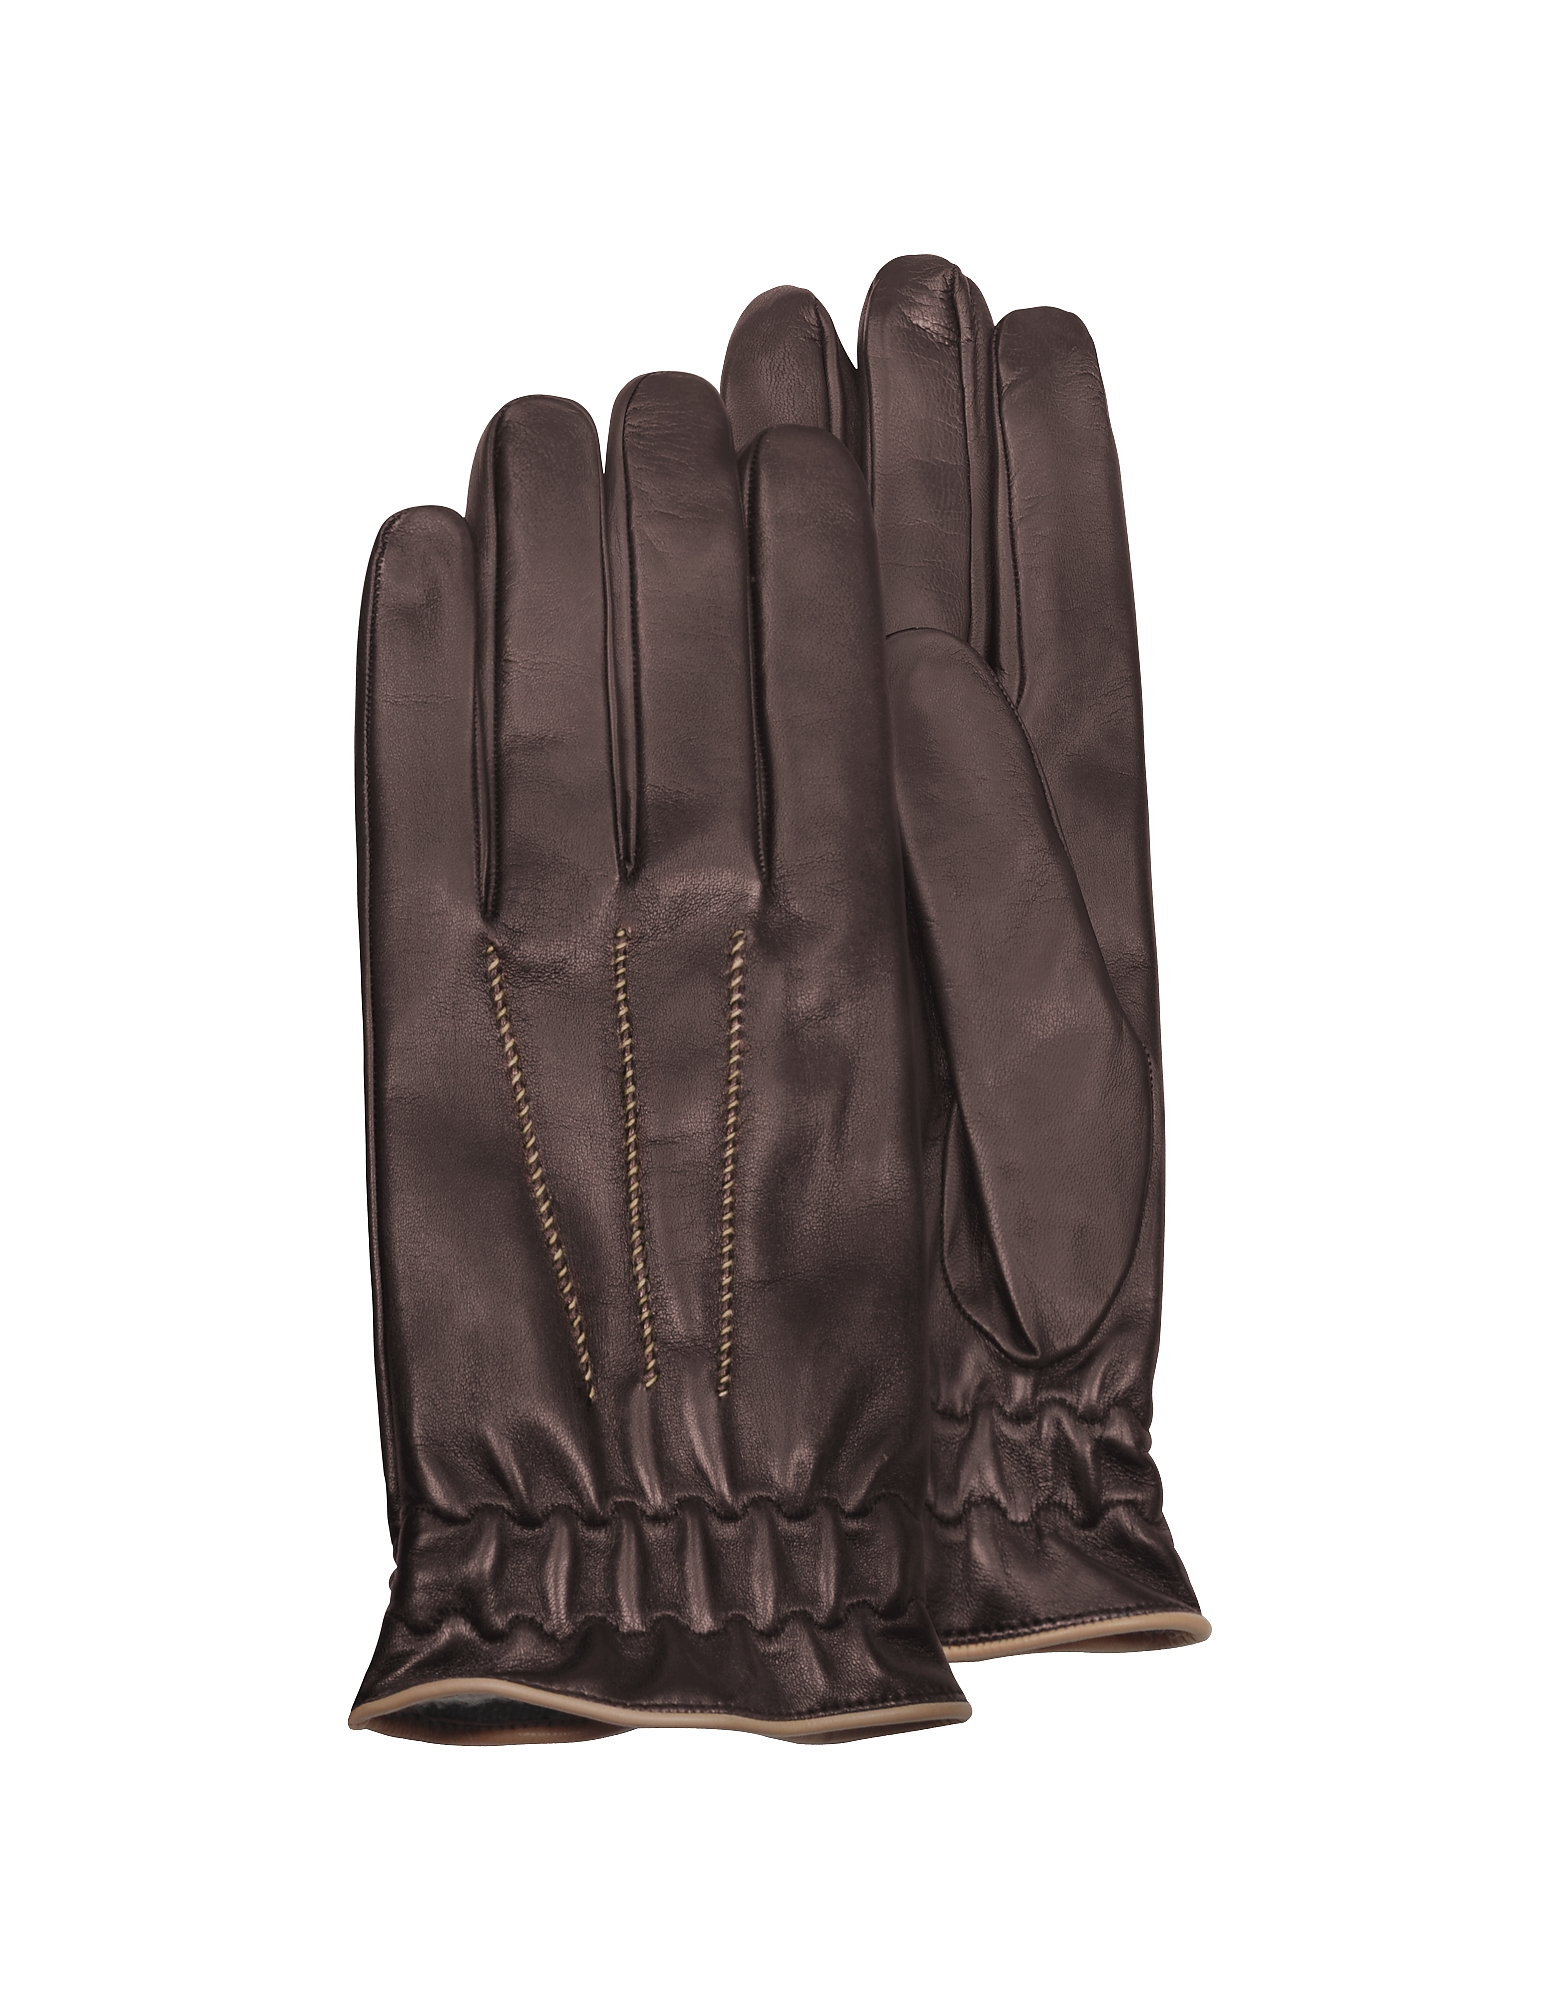 Forzieri Men's Gloves, Men's Brown Cashmere-Lined Calf Leather Gloves